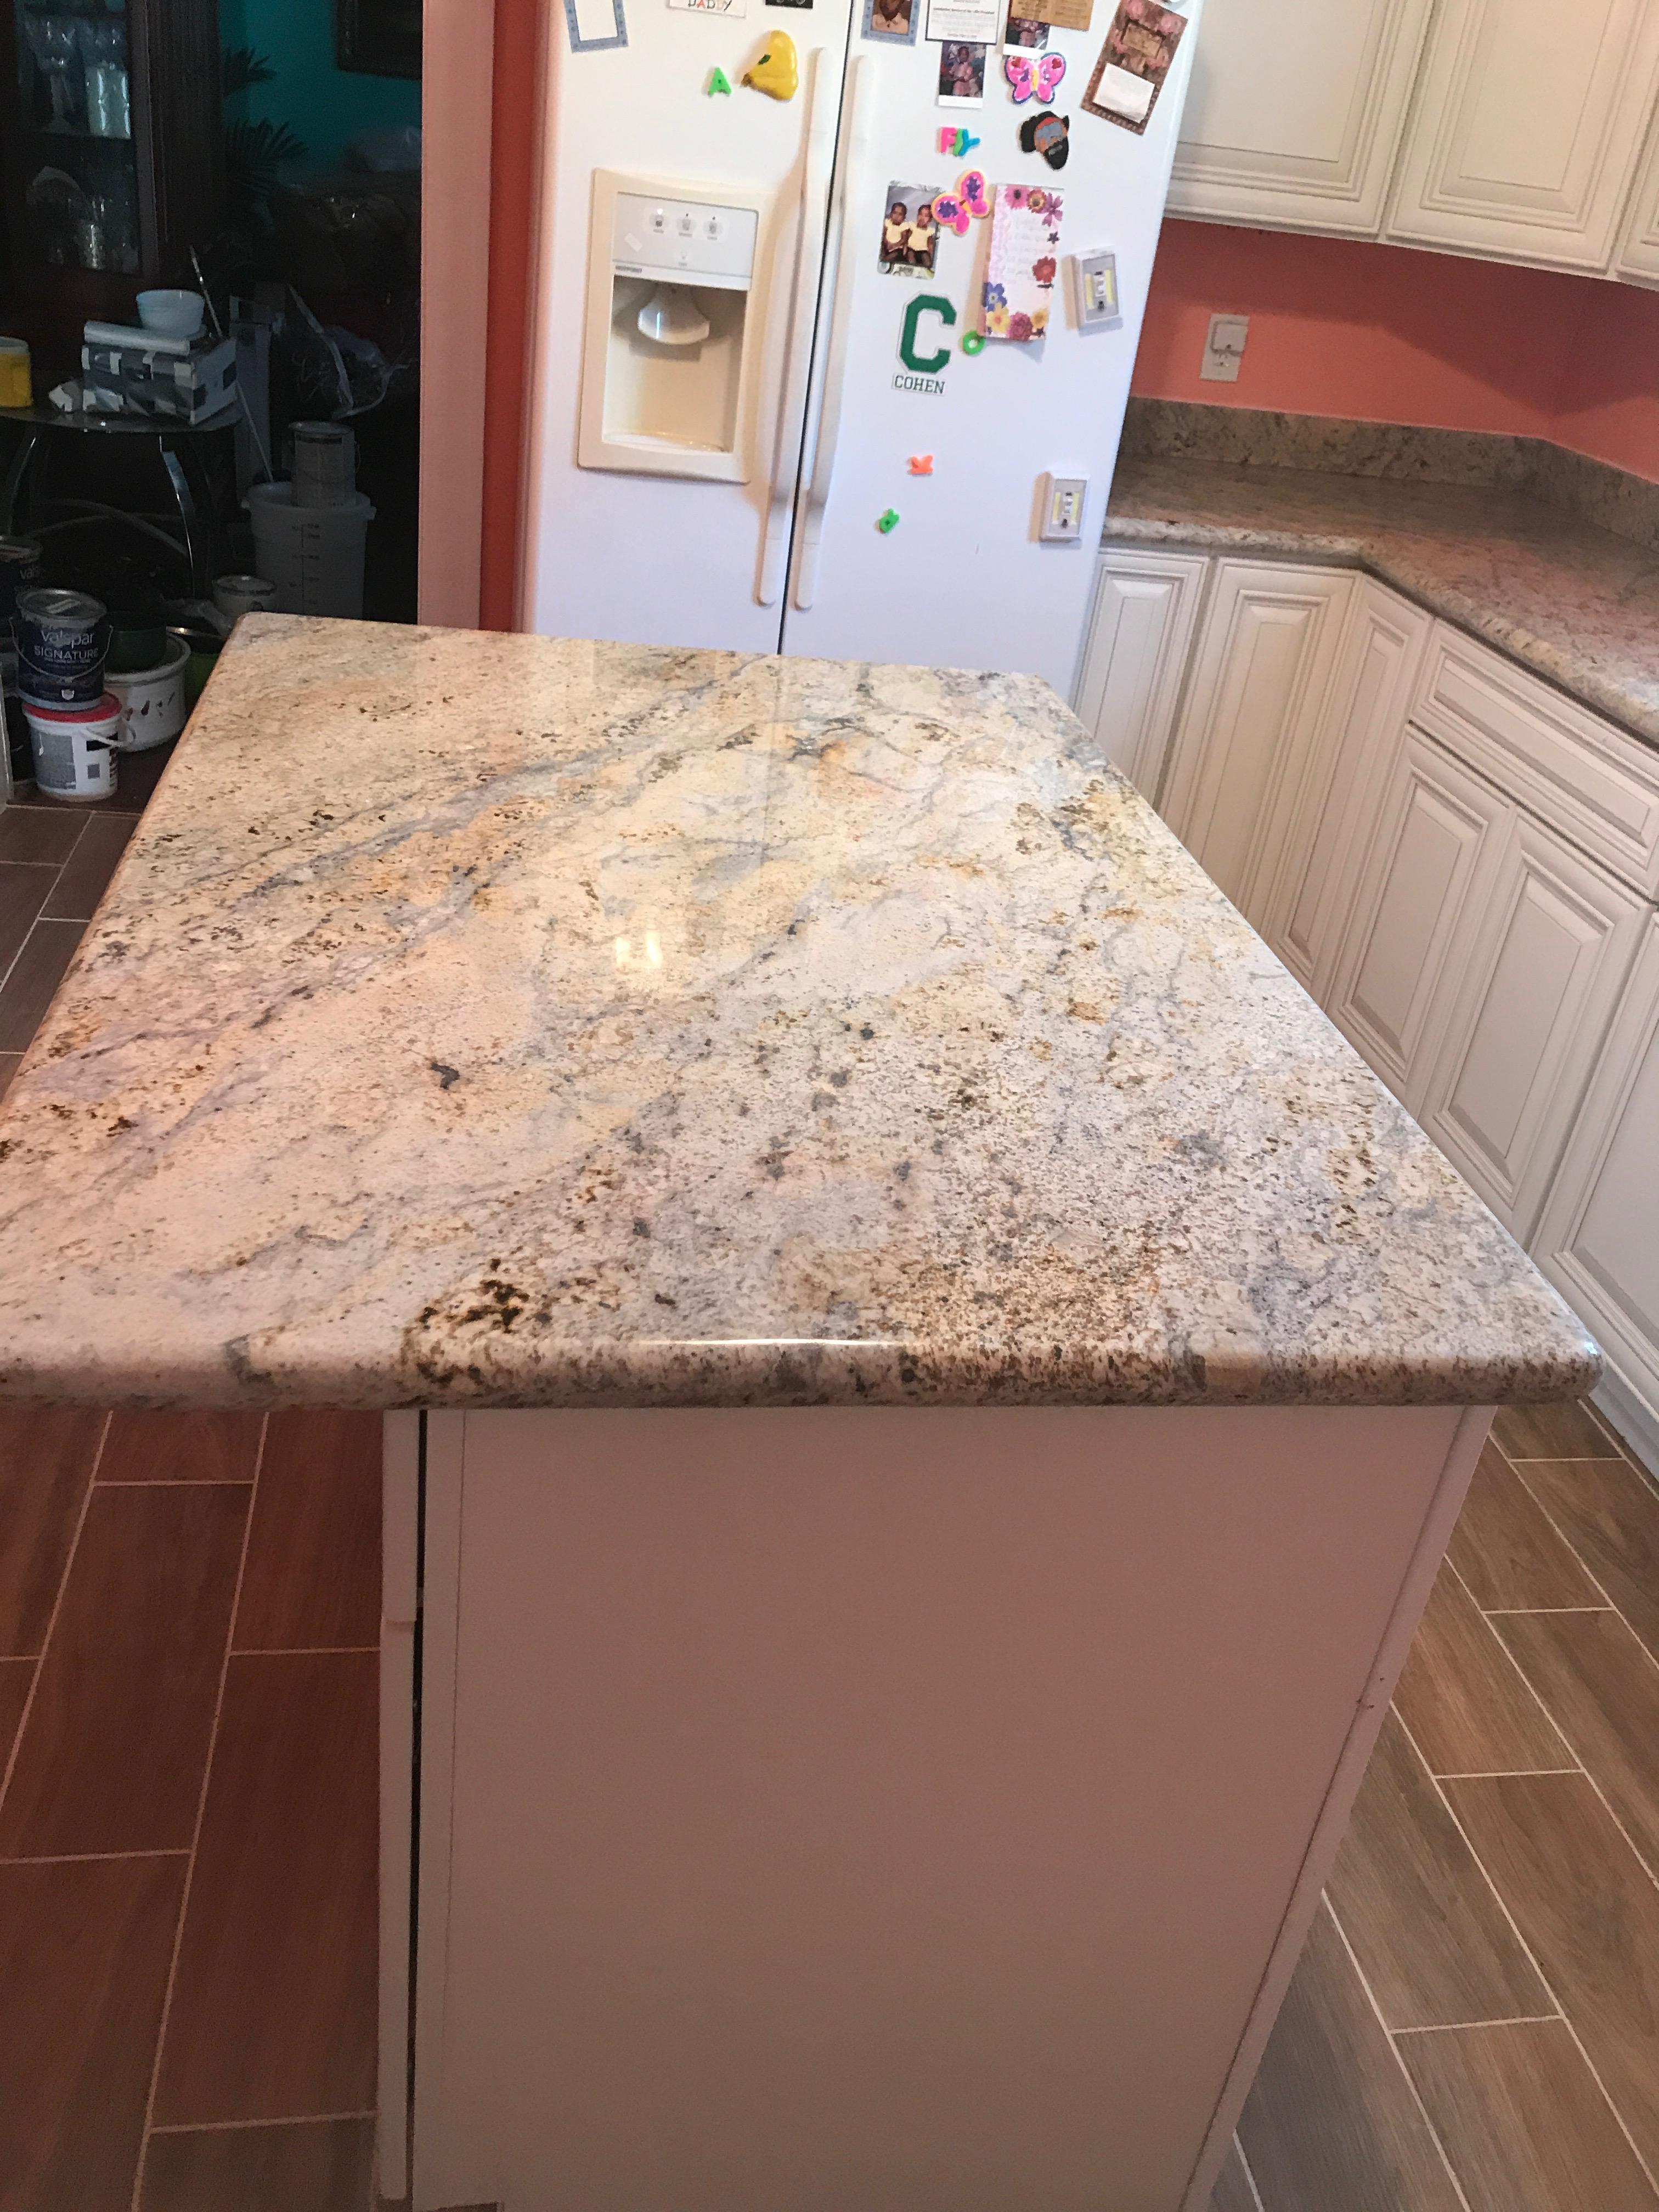 prices silestone backsplash quartz countertop quarry outlet depot stone warehouse seattle is what san kitchen countertops full or diego of silas cons size carrara and wholesale manufactured pros where sill australia nj hook surfaces home